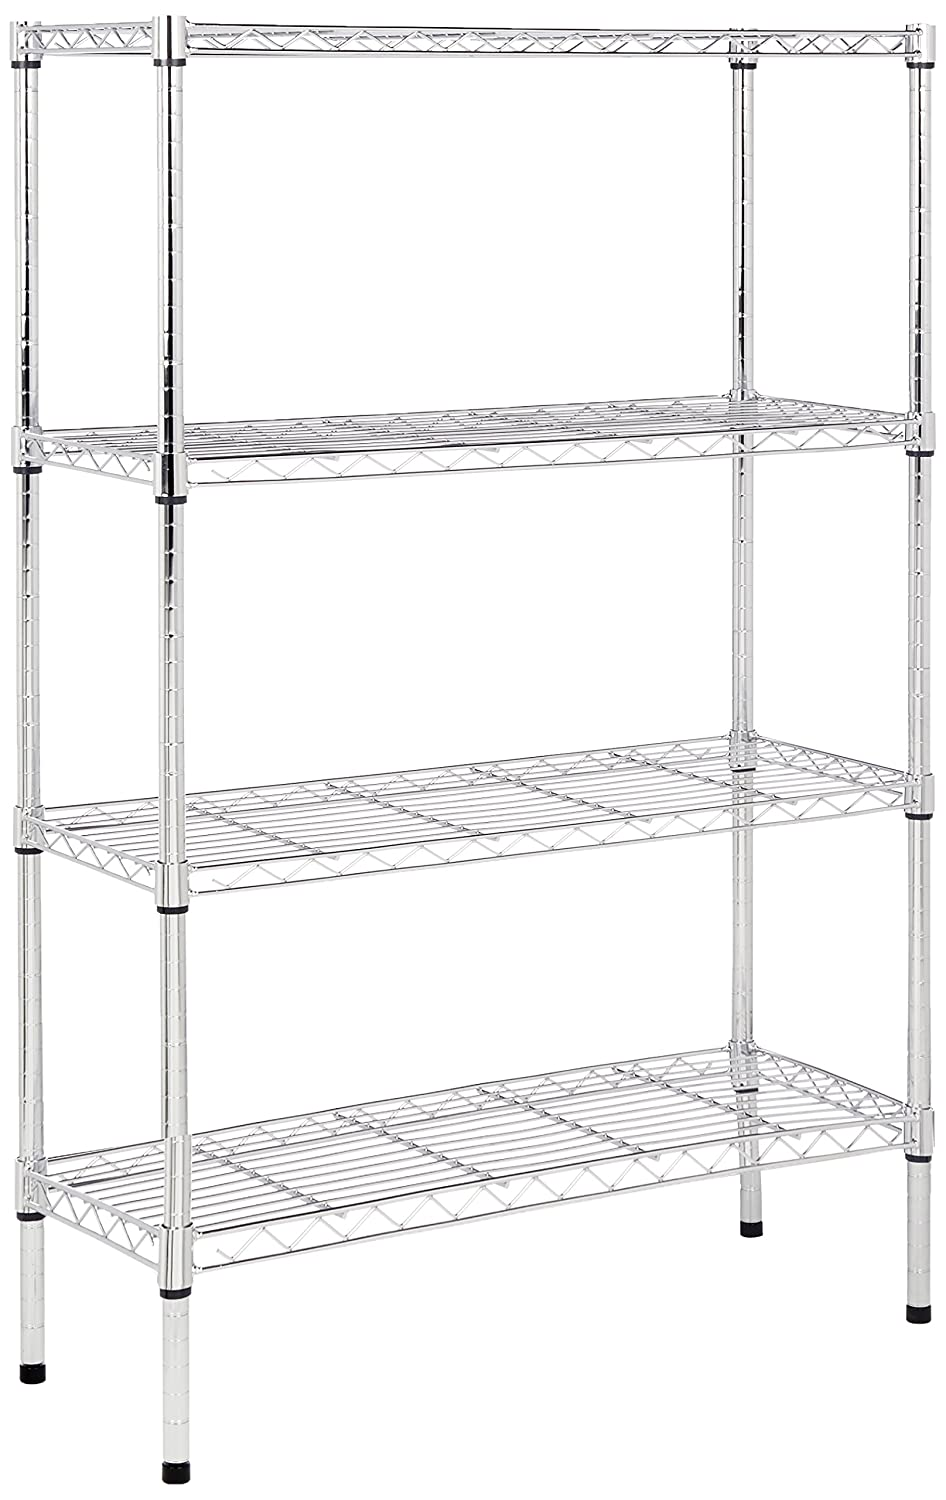 Amazon.com: AmazonBasics 4-Shelf Shelving Unit - Chrome: Home ...